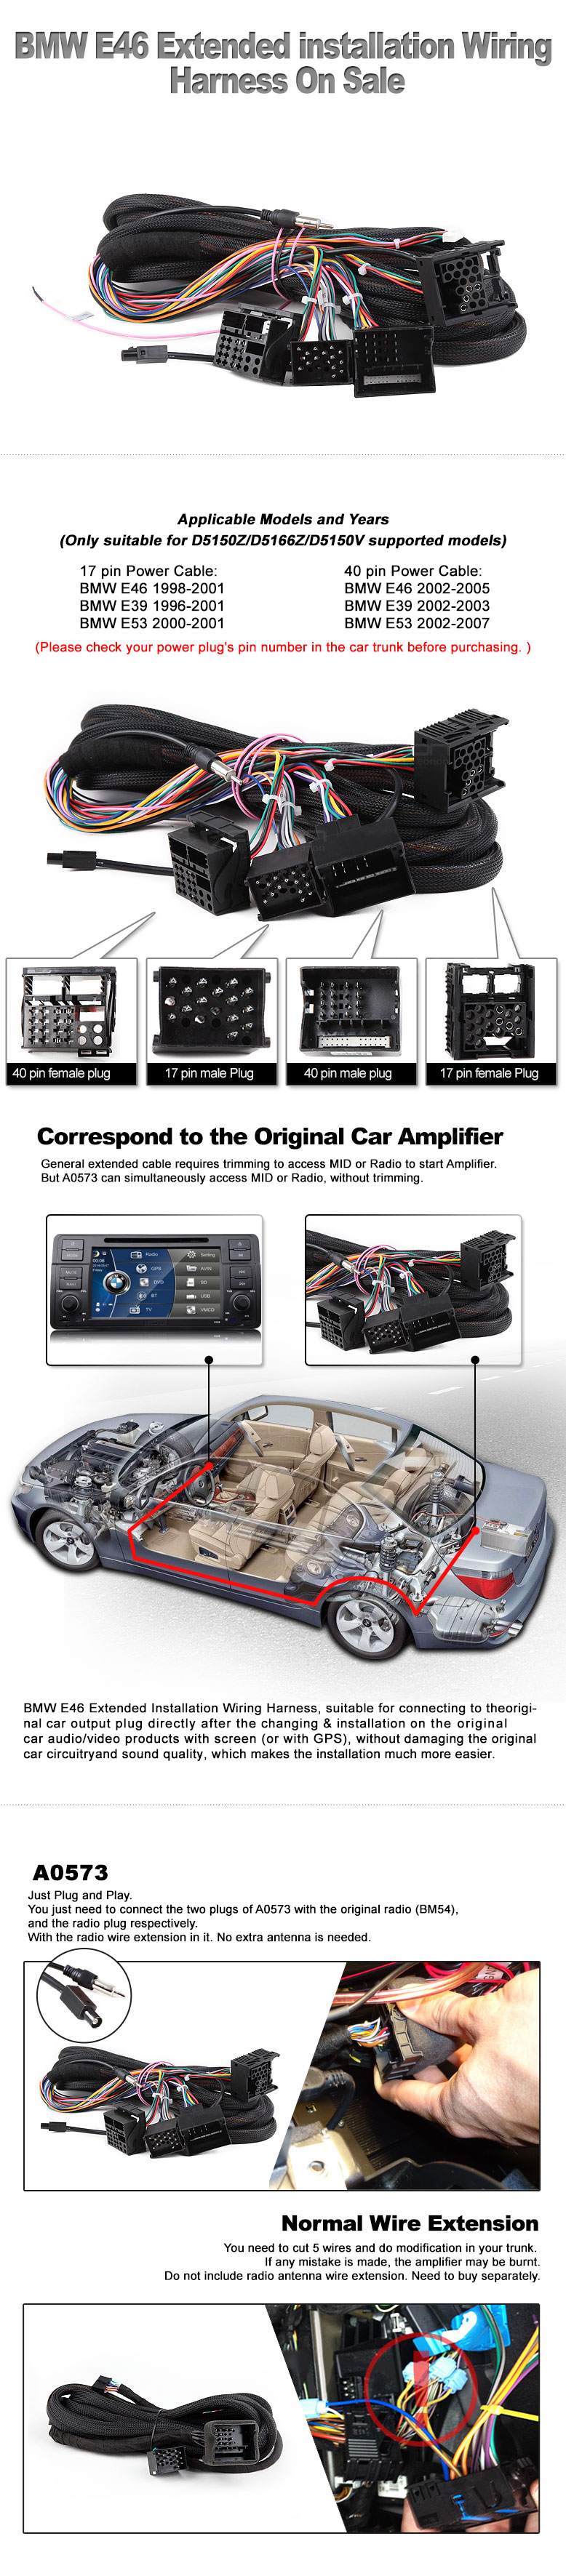 Special For Bmw 3 Series E46 7 Inch Digital Screen Touch Dvd 1996 328i Wiring Harness Description